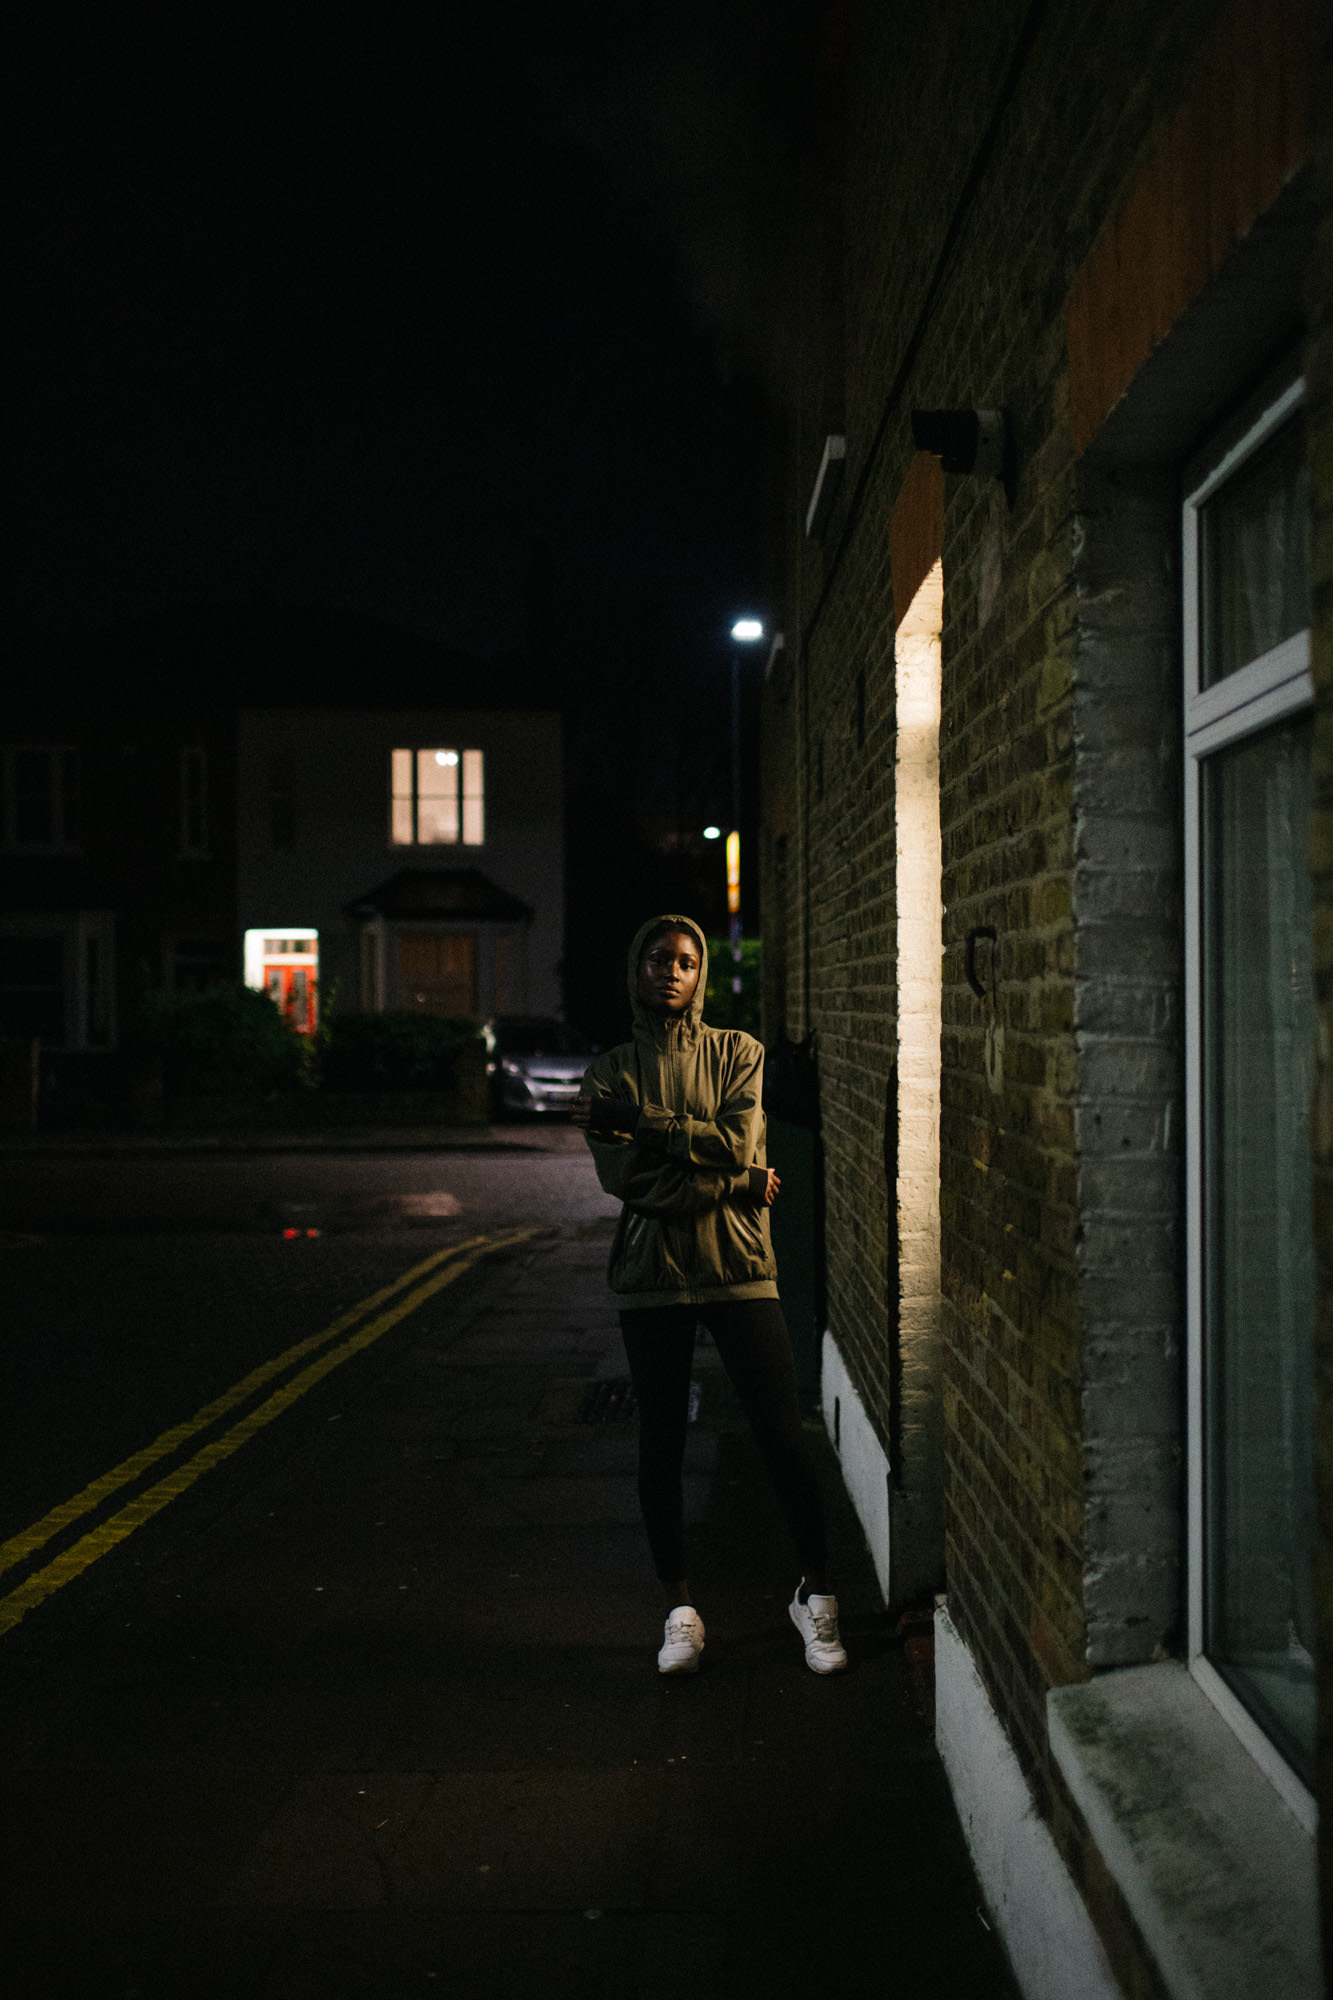 Young ethnic woman on street at night